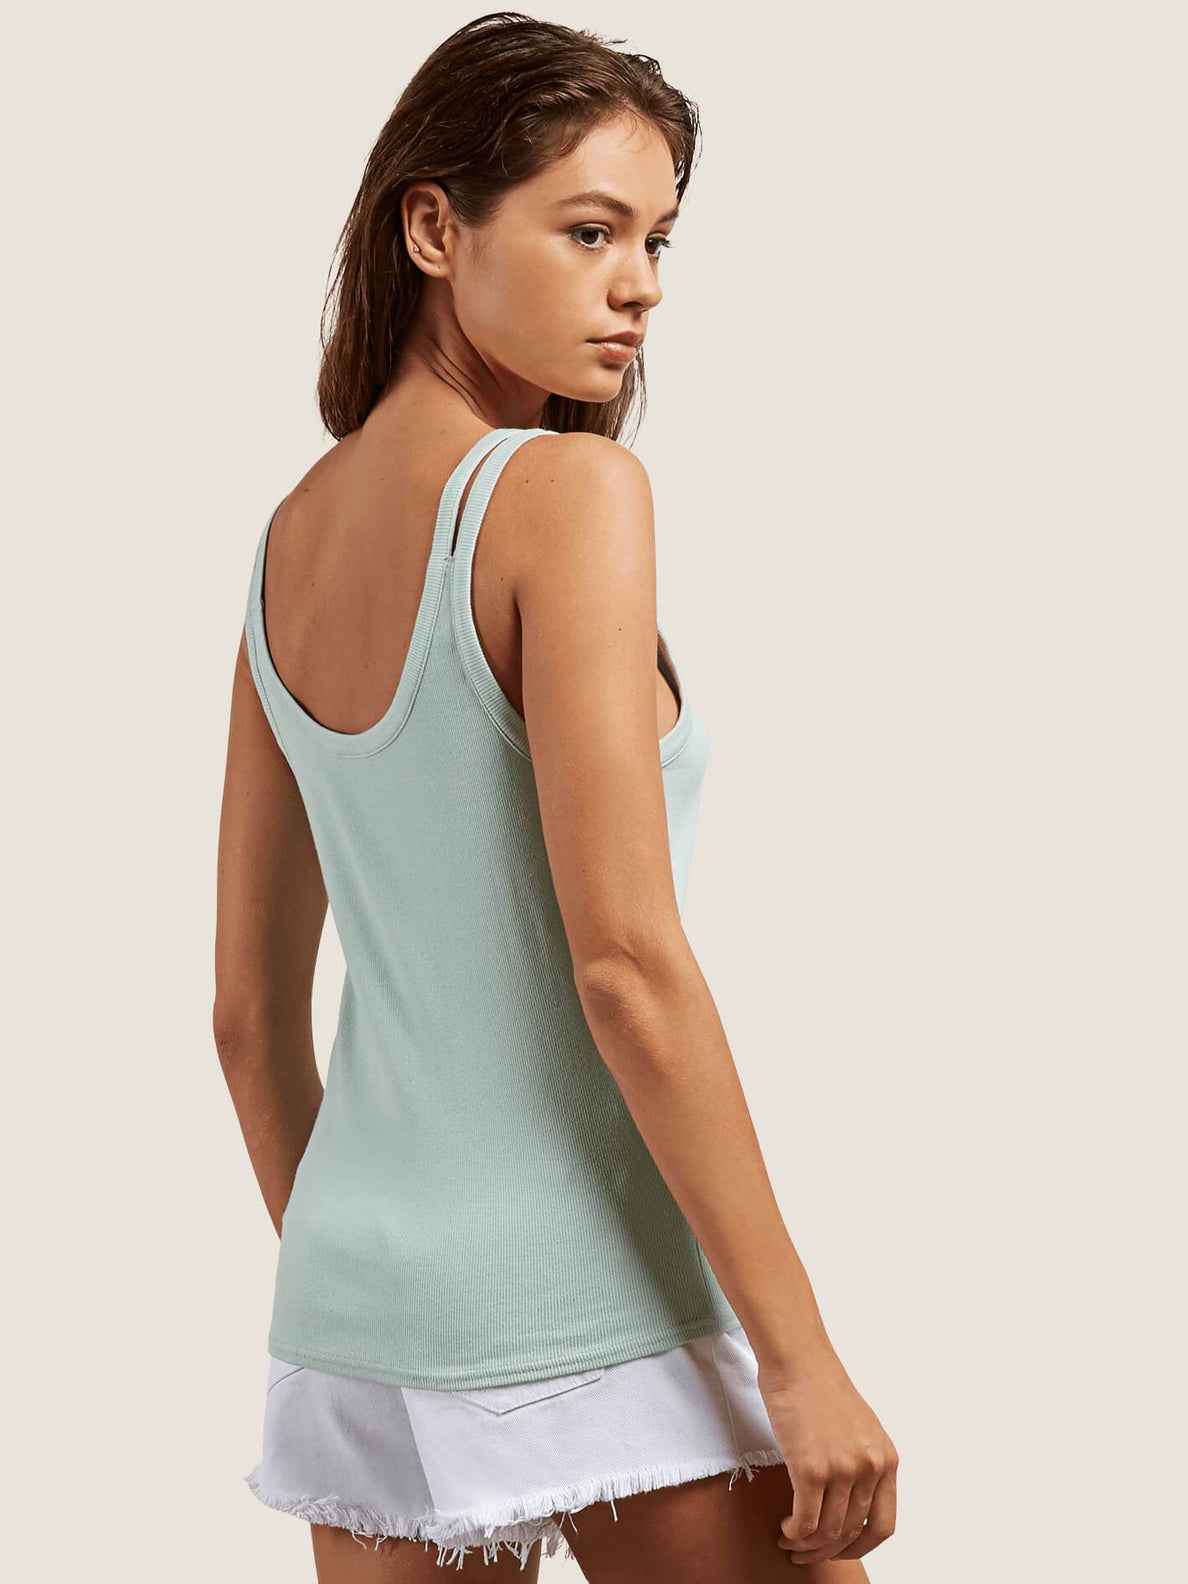 Cactus Ridge Tank In Mint, Back View